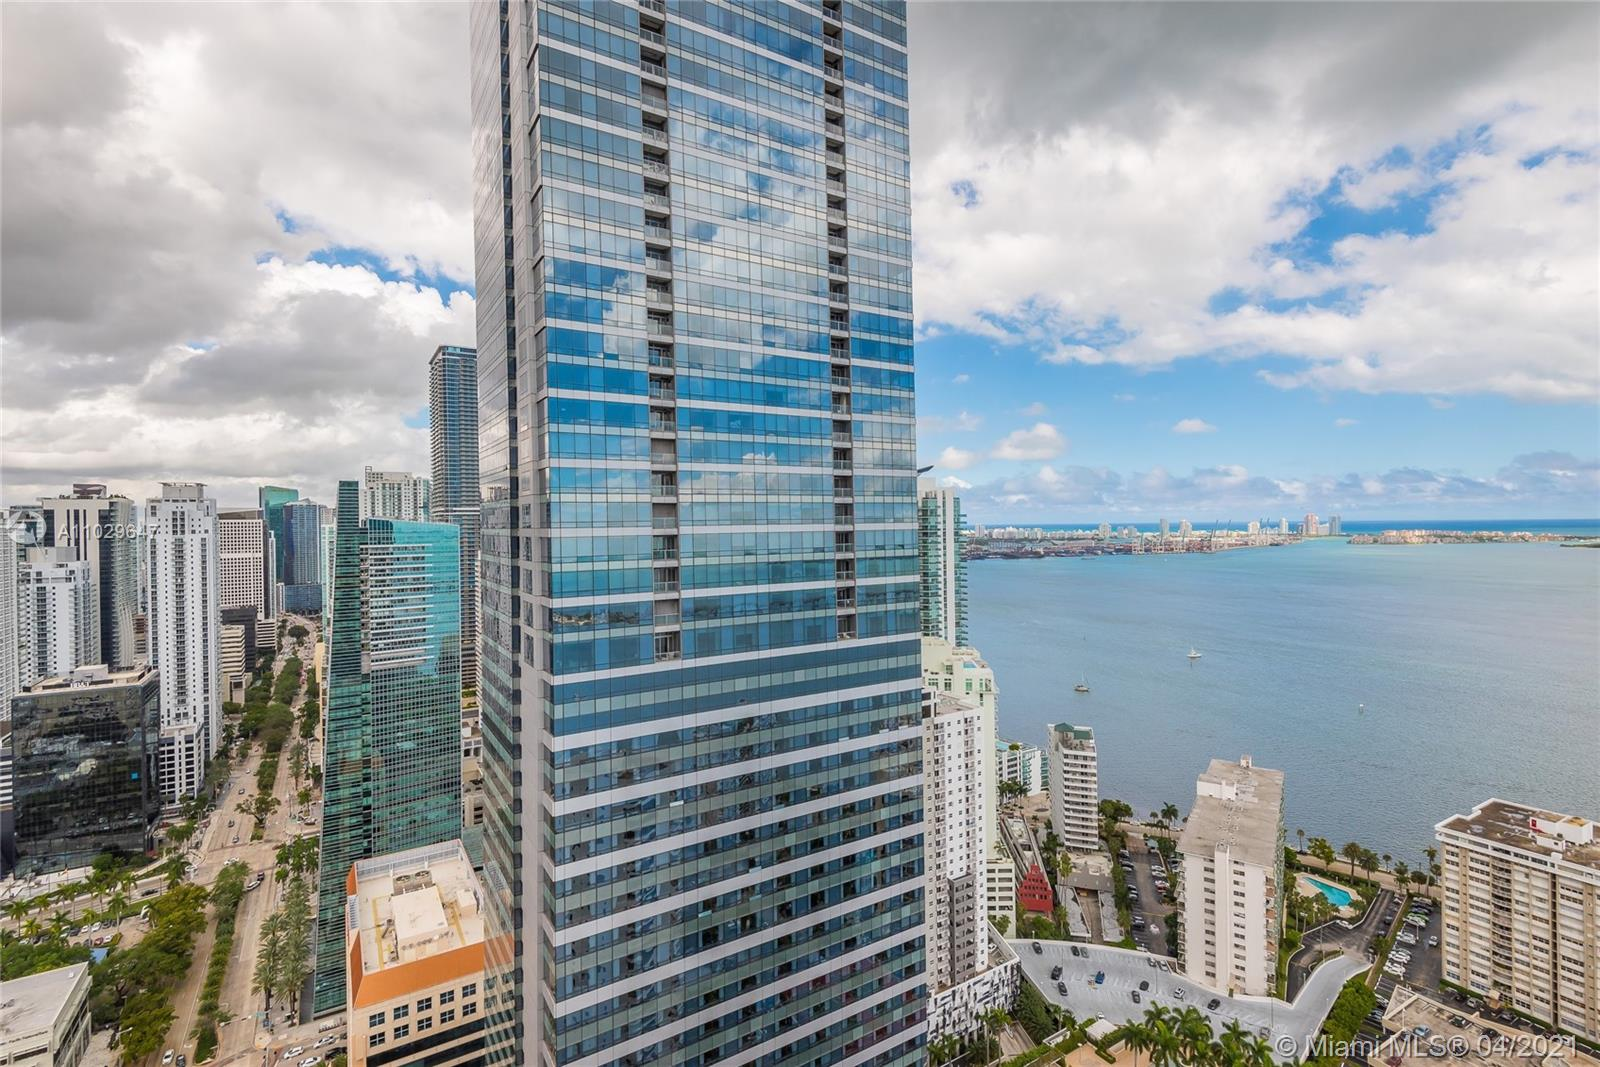 This home in the sky features panoramic water and city views, iHome technology, marble flooring, Sub-Zero and Wolf appliances, built-in coffee & espresso machine and custom Italian cabinets. The building amenities include state- of-the-art 2,800 sq ft. fitness and spa overlooking pool, bay and downtown. It doesn't stop there, room service from the pool side restaurant and dog-sitter/walker too. Luxury lifestyle Miami style!